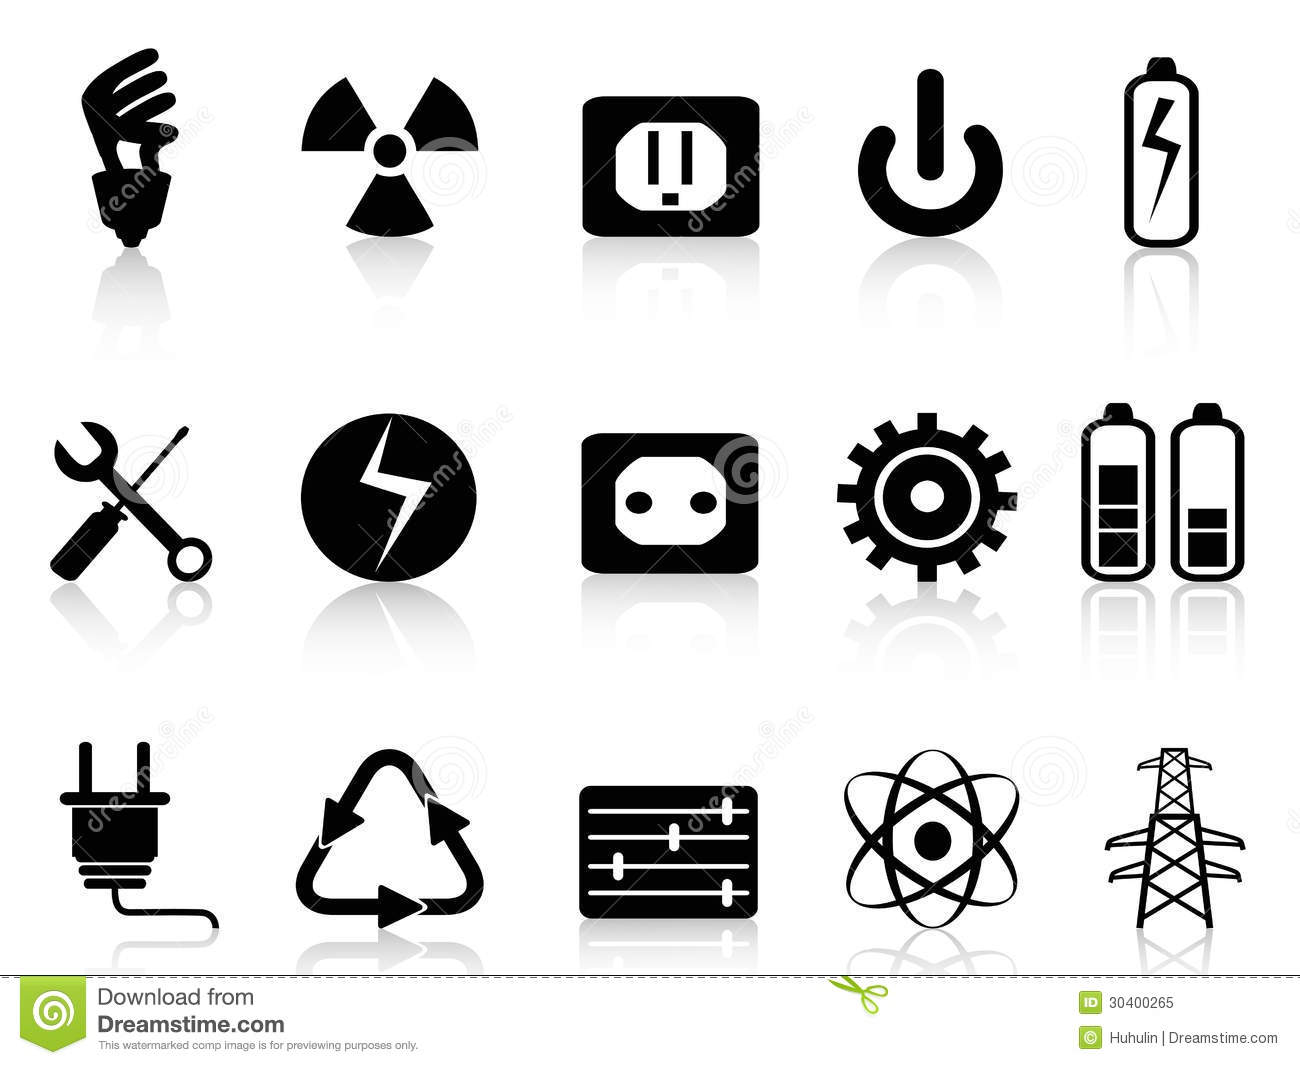 Practical Considerations Of Lv Mv Private Substations likewise 4z47l6 further 24 besides Royalty Free Stock Photo Electricity Power Icons Set Isolated Black White Background Image30400265 additionally Stock Images Hazard Warning Attention Sign Exclamation Mark Symbol White Image33598594. on electric generator symbol